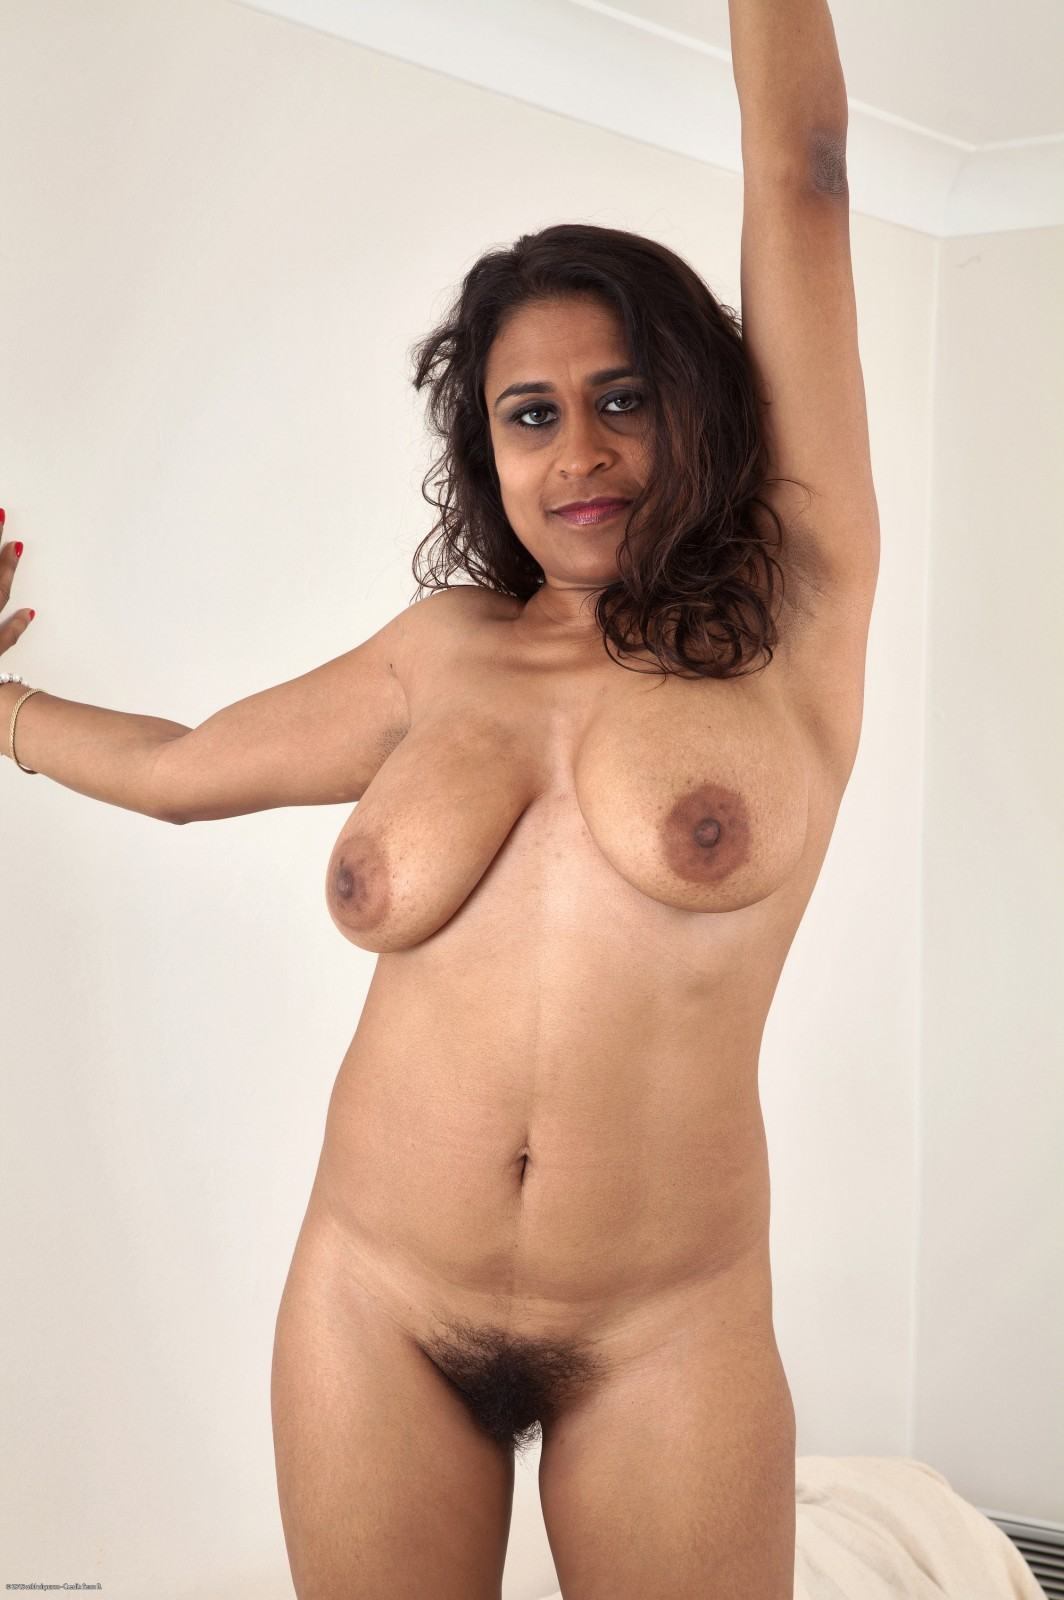 pussy-gallery-galleries-mature-models-time-fucking-and